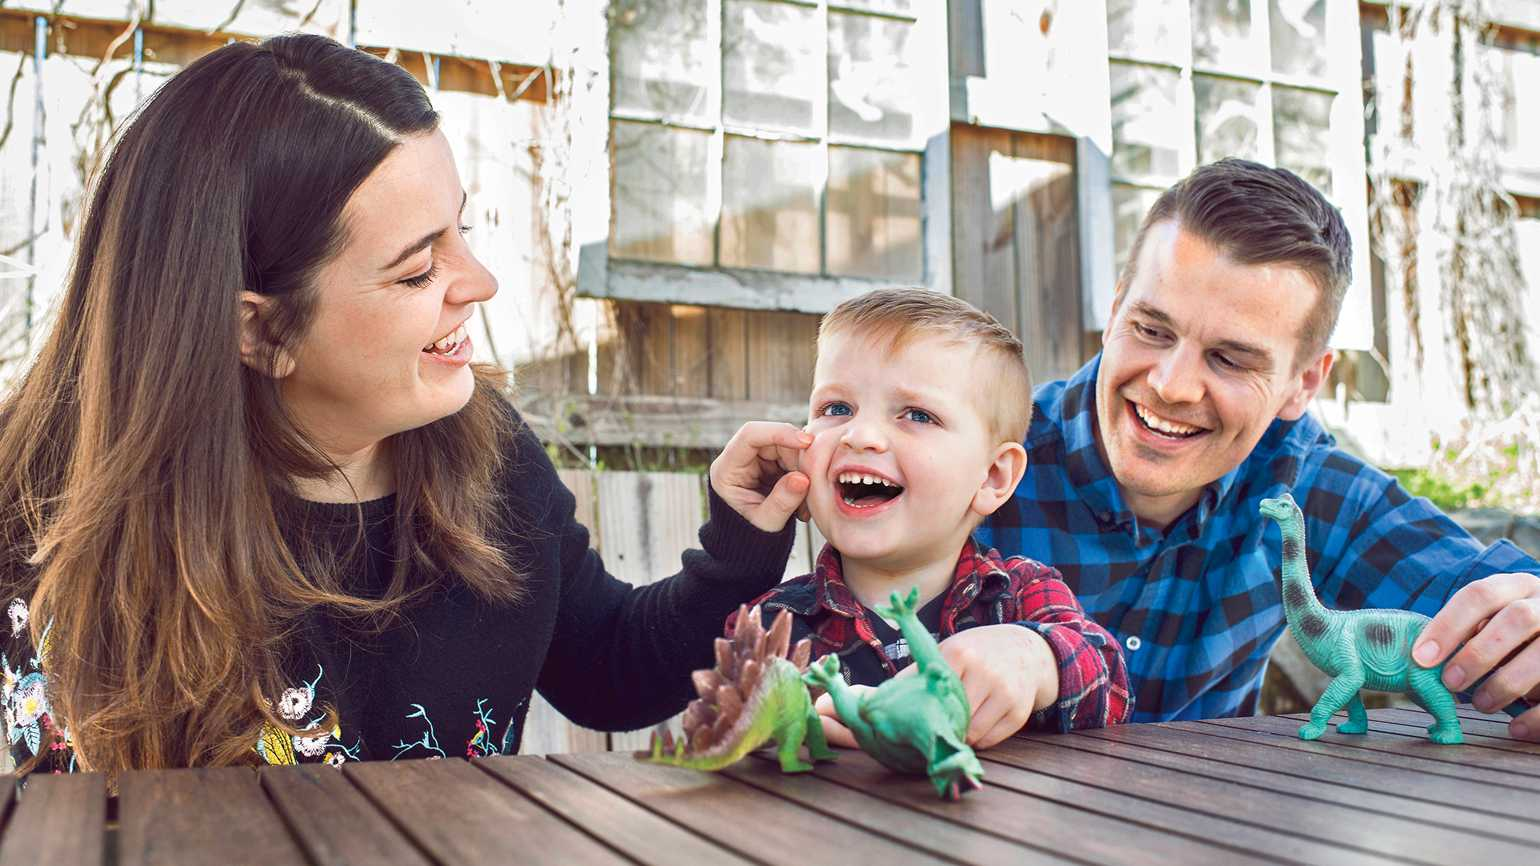 Kate at home with her husband, Toban, and their son Zach.